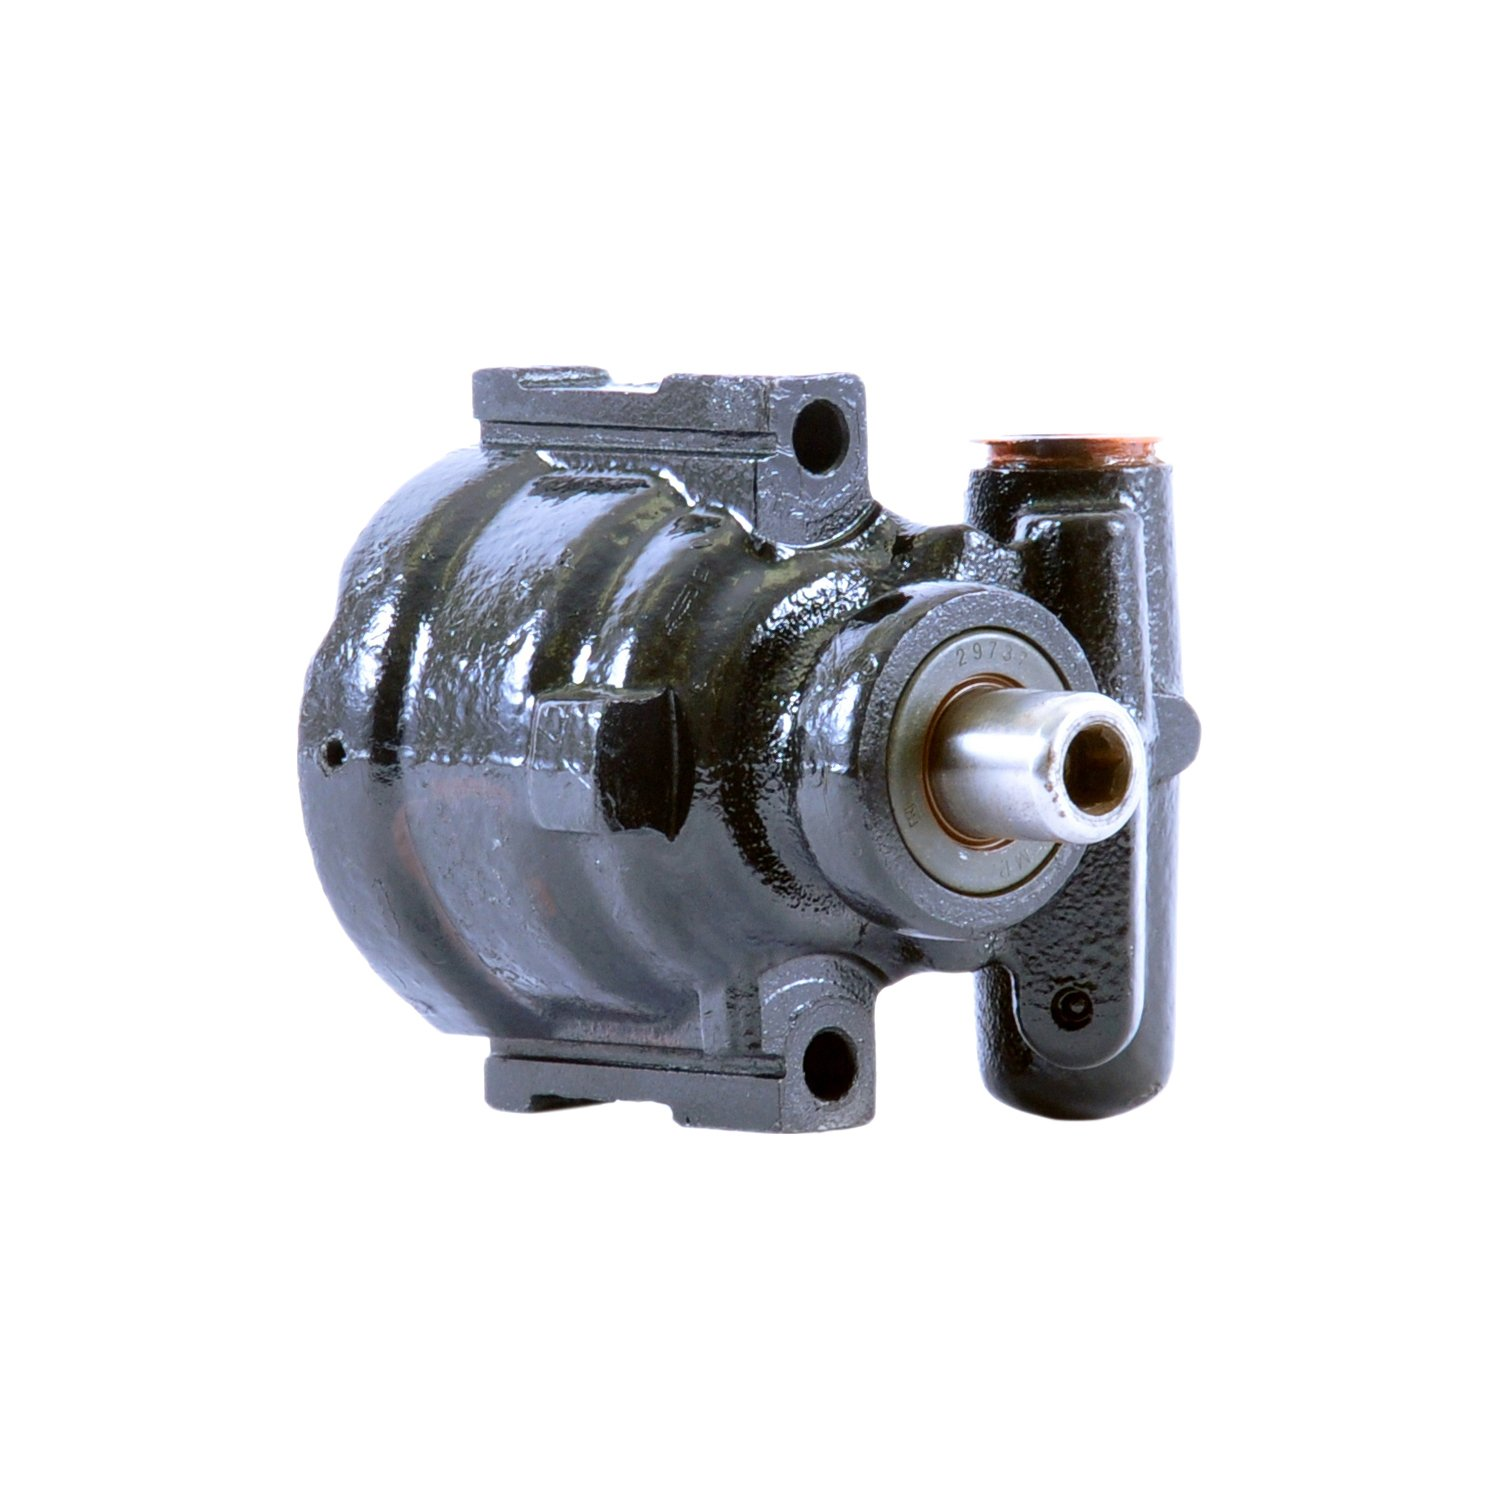 Remanufactured ACDelco 36P0235 Professional Power Steering Pump